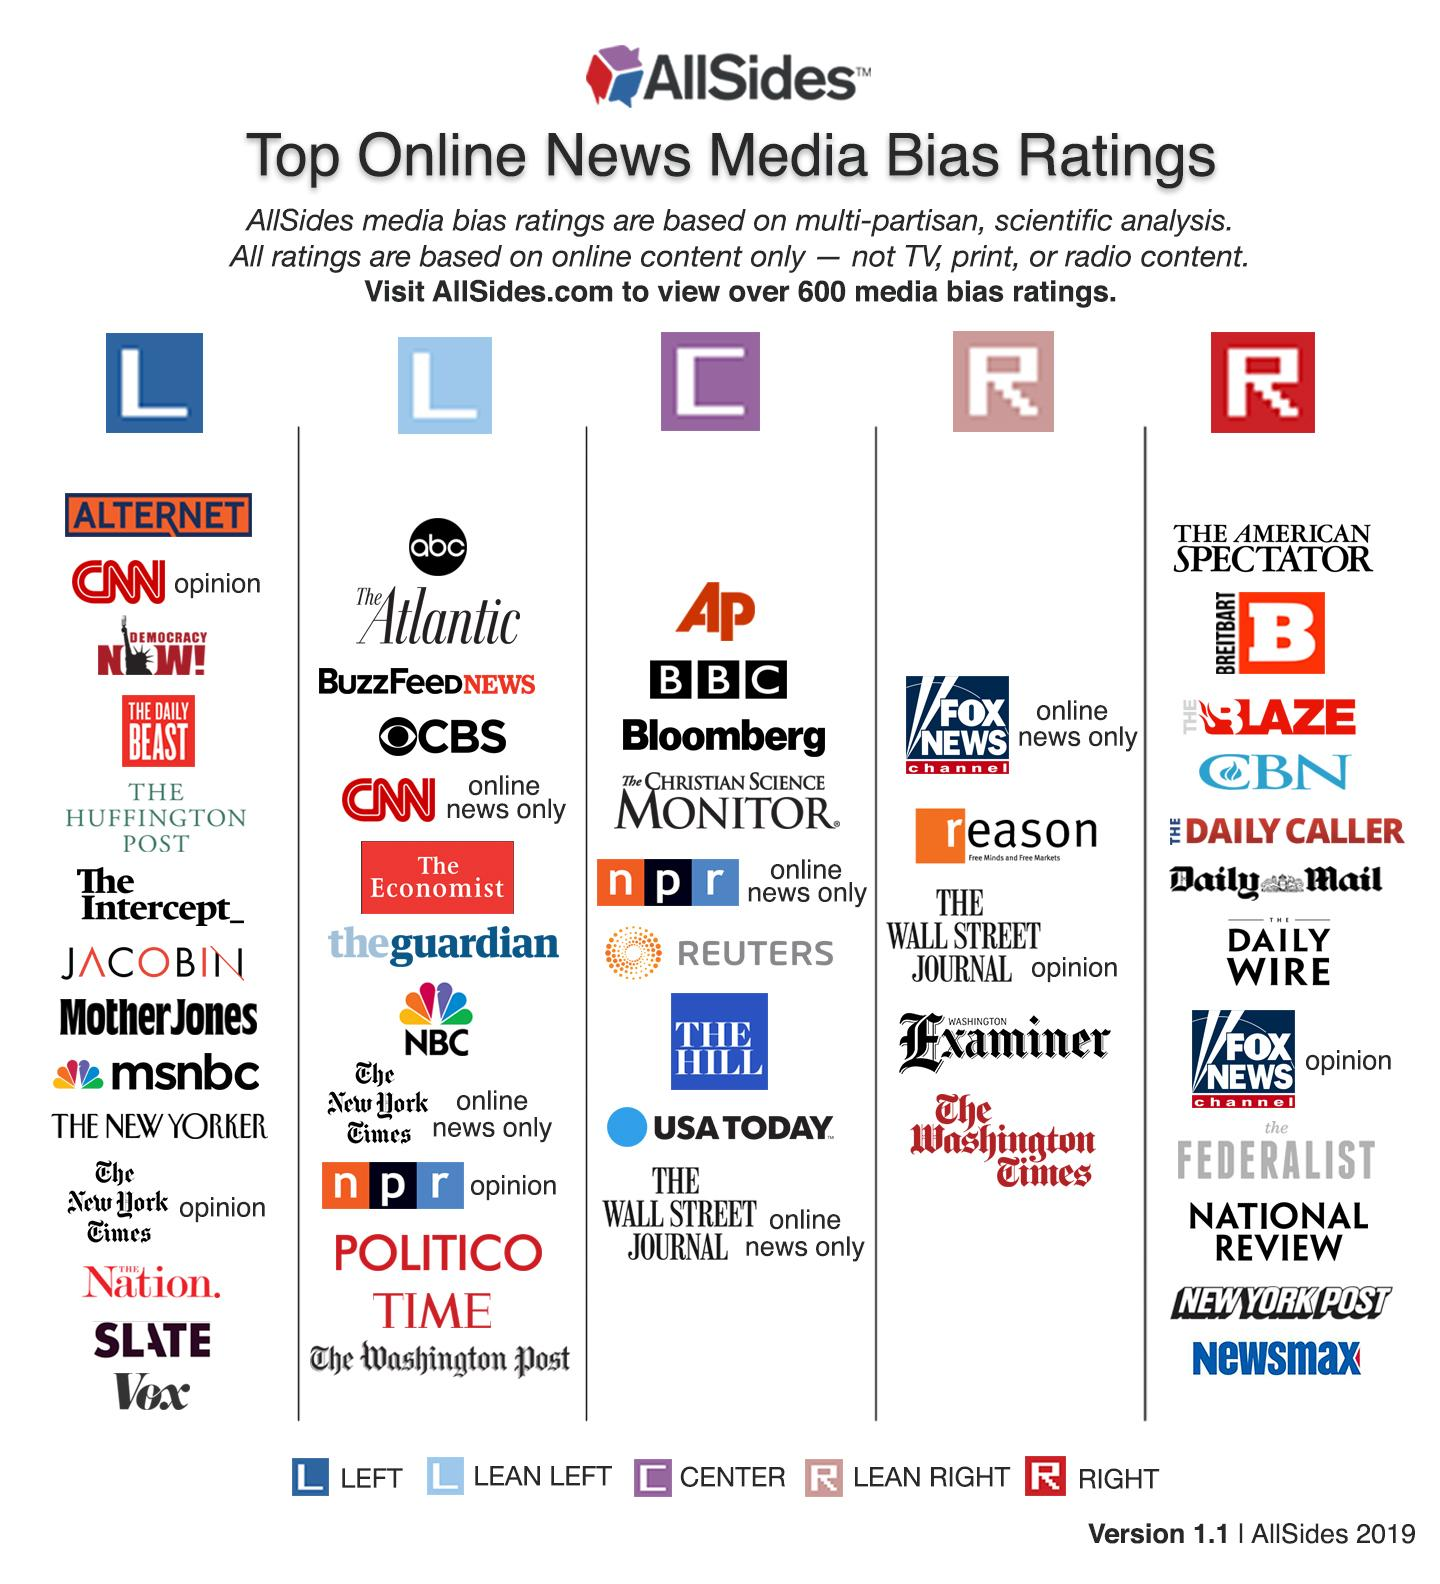 Allsides media bias chart, 2018 or 2019?